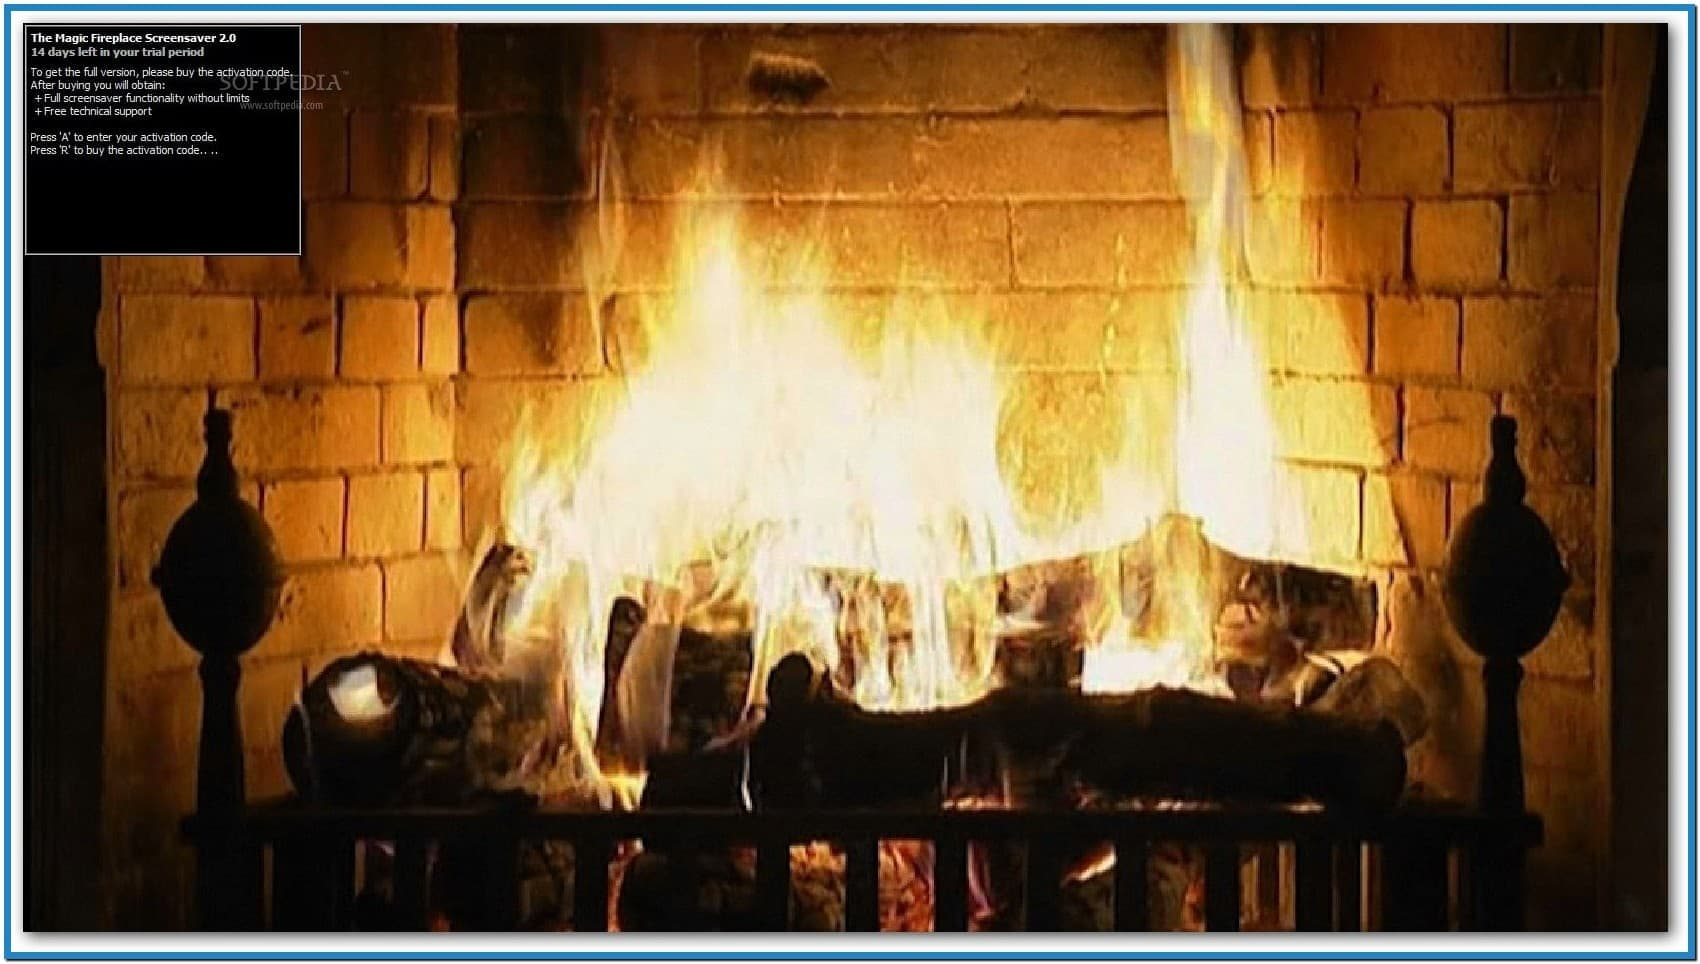 animated fireplace screensaver with sounds Car Tuning 1700x964